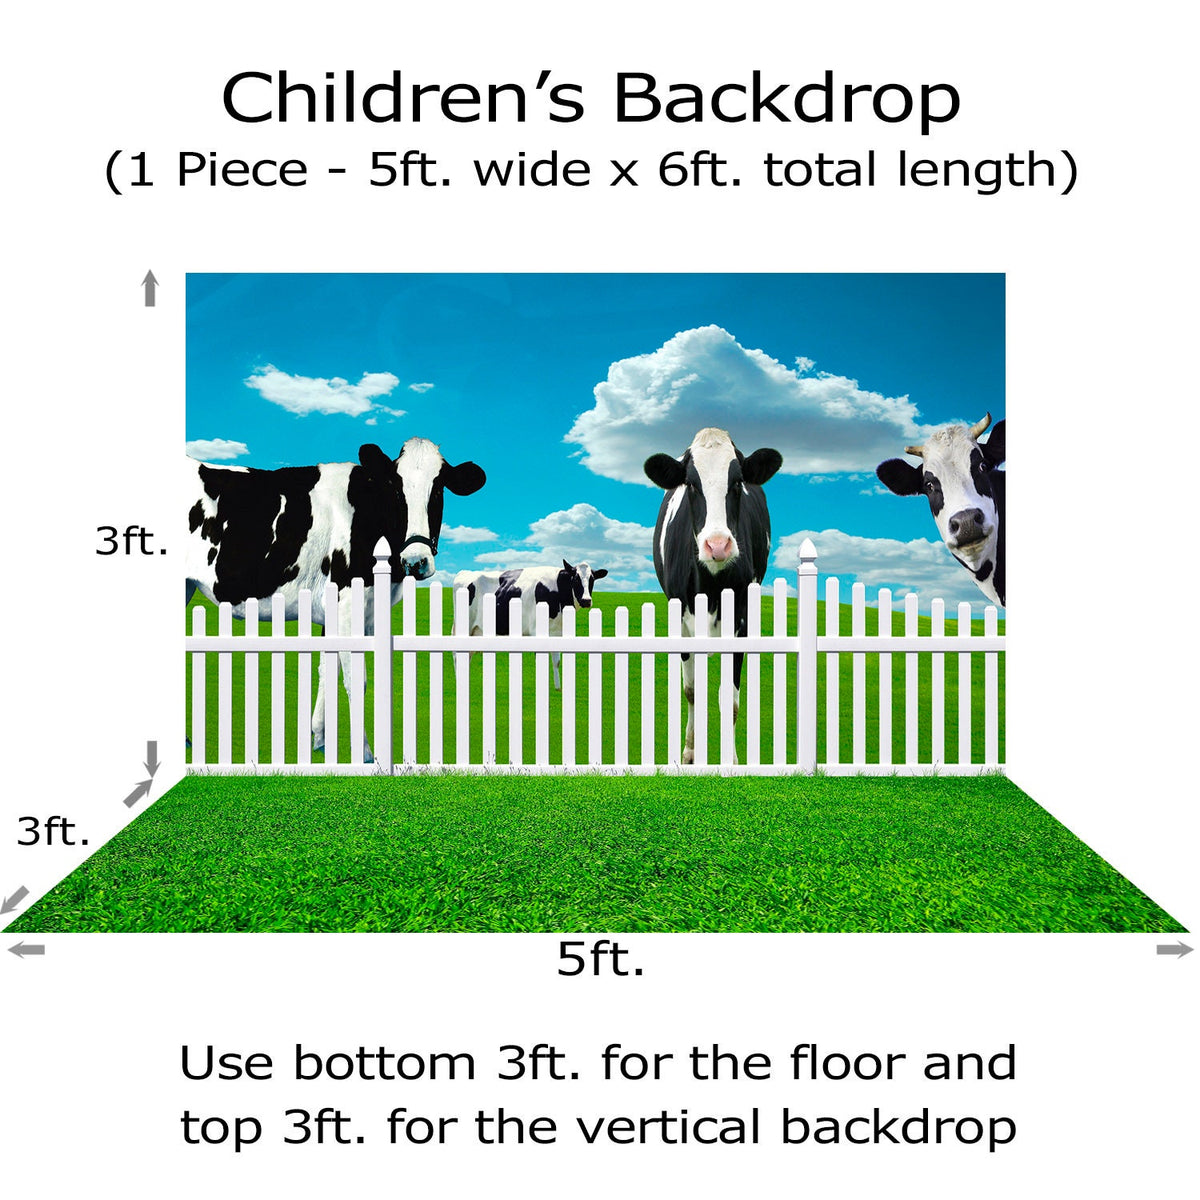 Cows and Kids Photograhy Backdrop, Outdoor, Farm, Cake Smash, Ranch, Birthday, Children's Photo Background, Preschool, Kindergarten Photo Backdrop Alba Backgrounds 49.00 USD